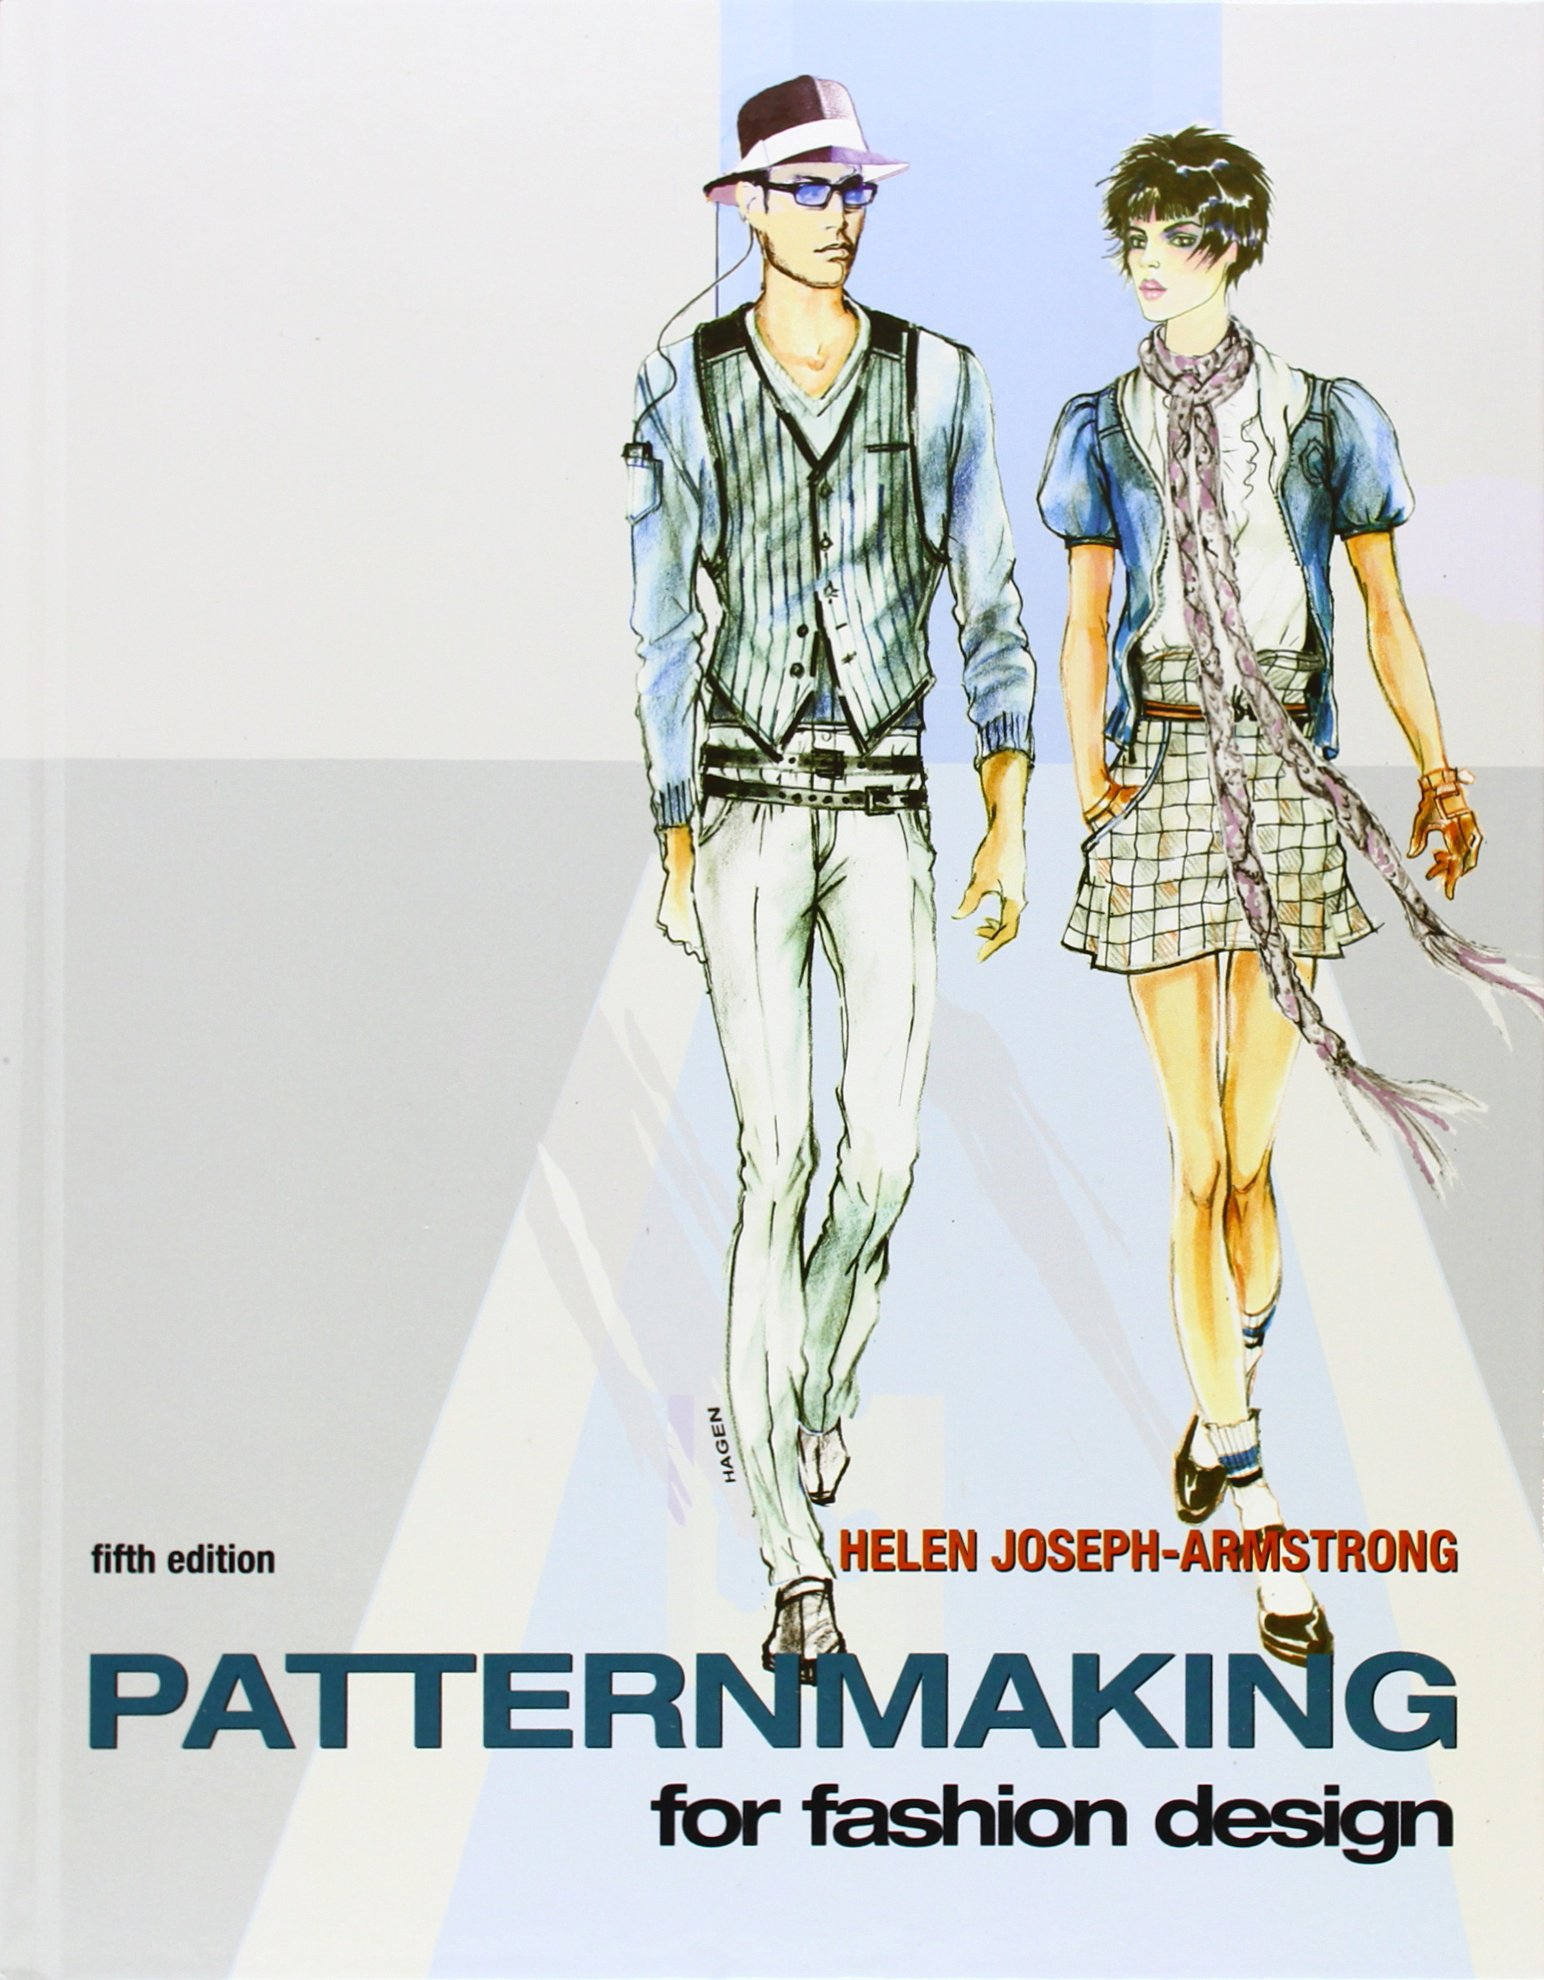 Patternmaking for fashion design 5th edition ebook